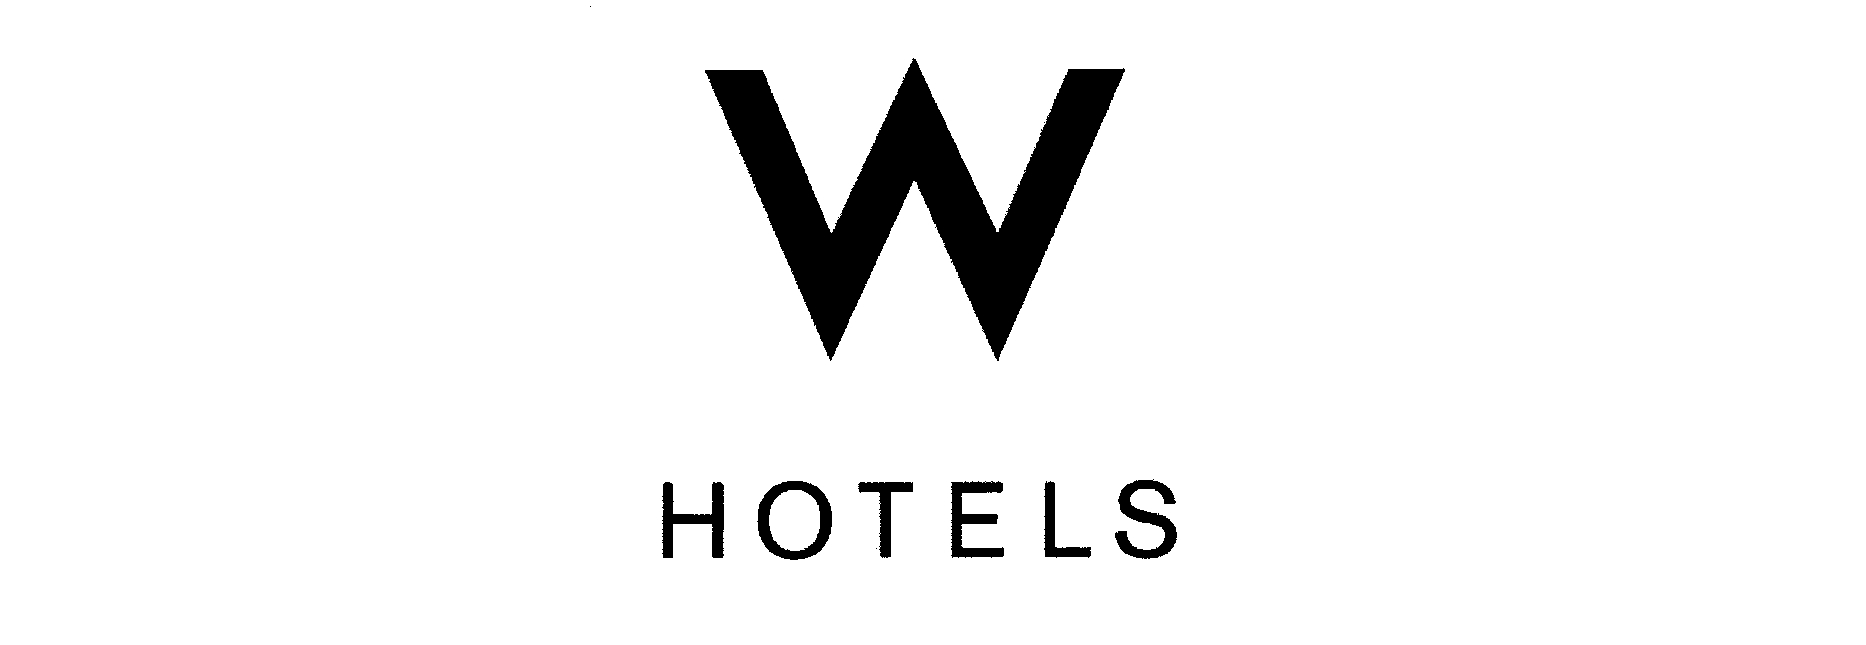 HOTELS by Starwo...W Hotels Logo